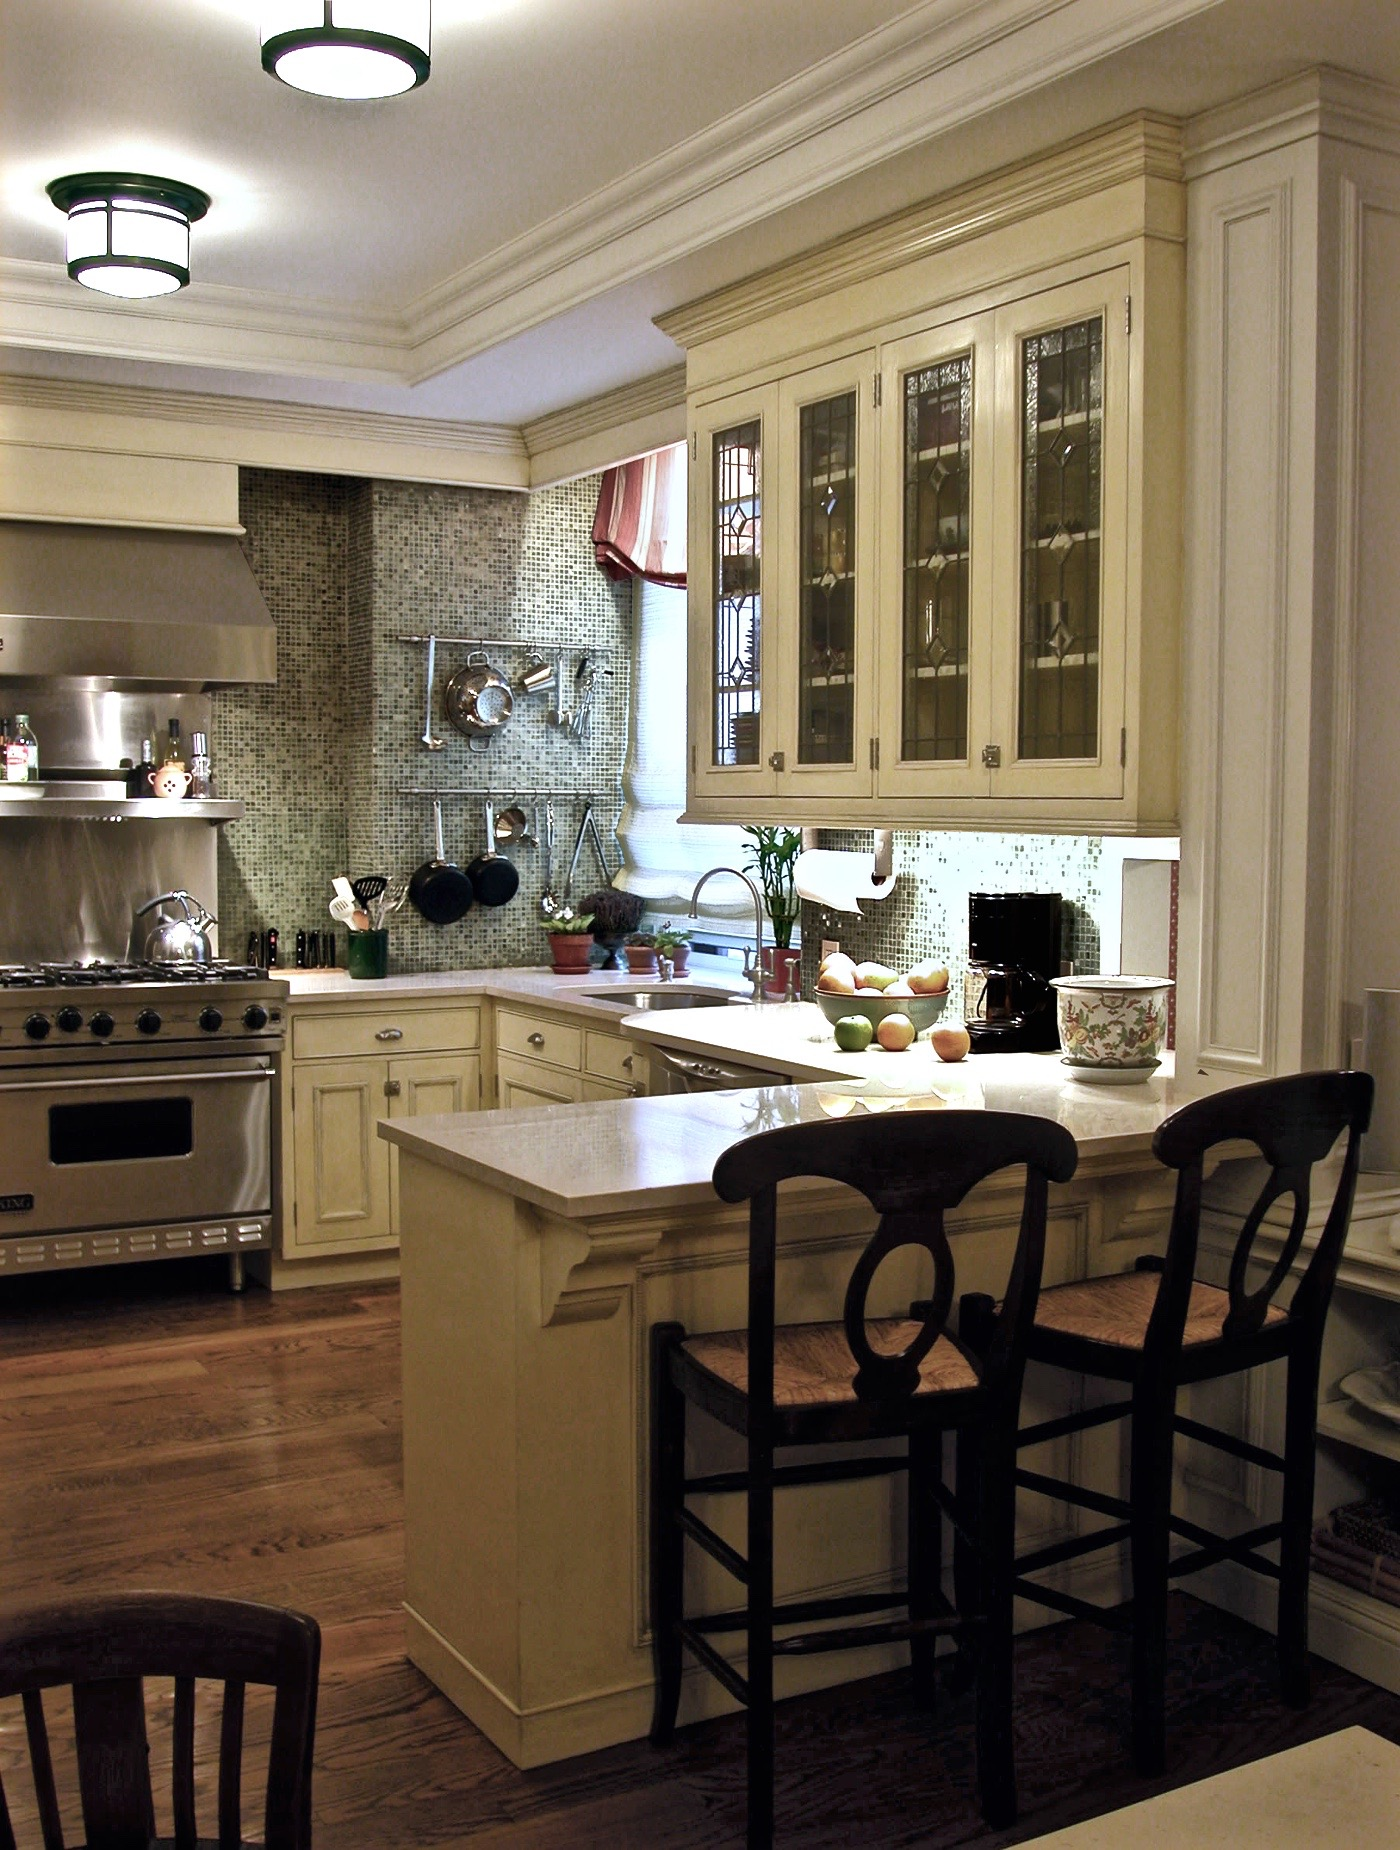 kitchen-verion-2